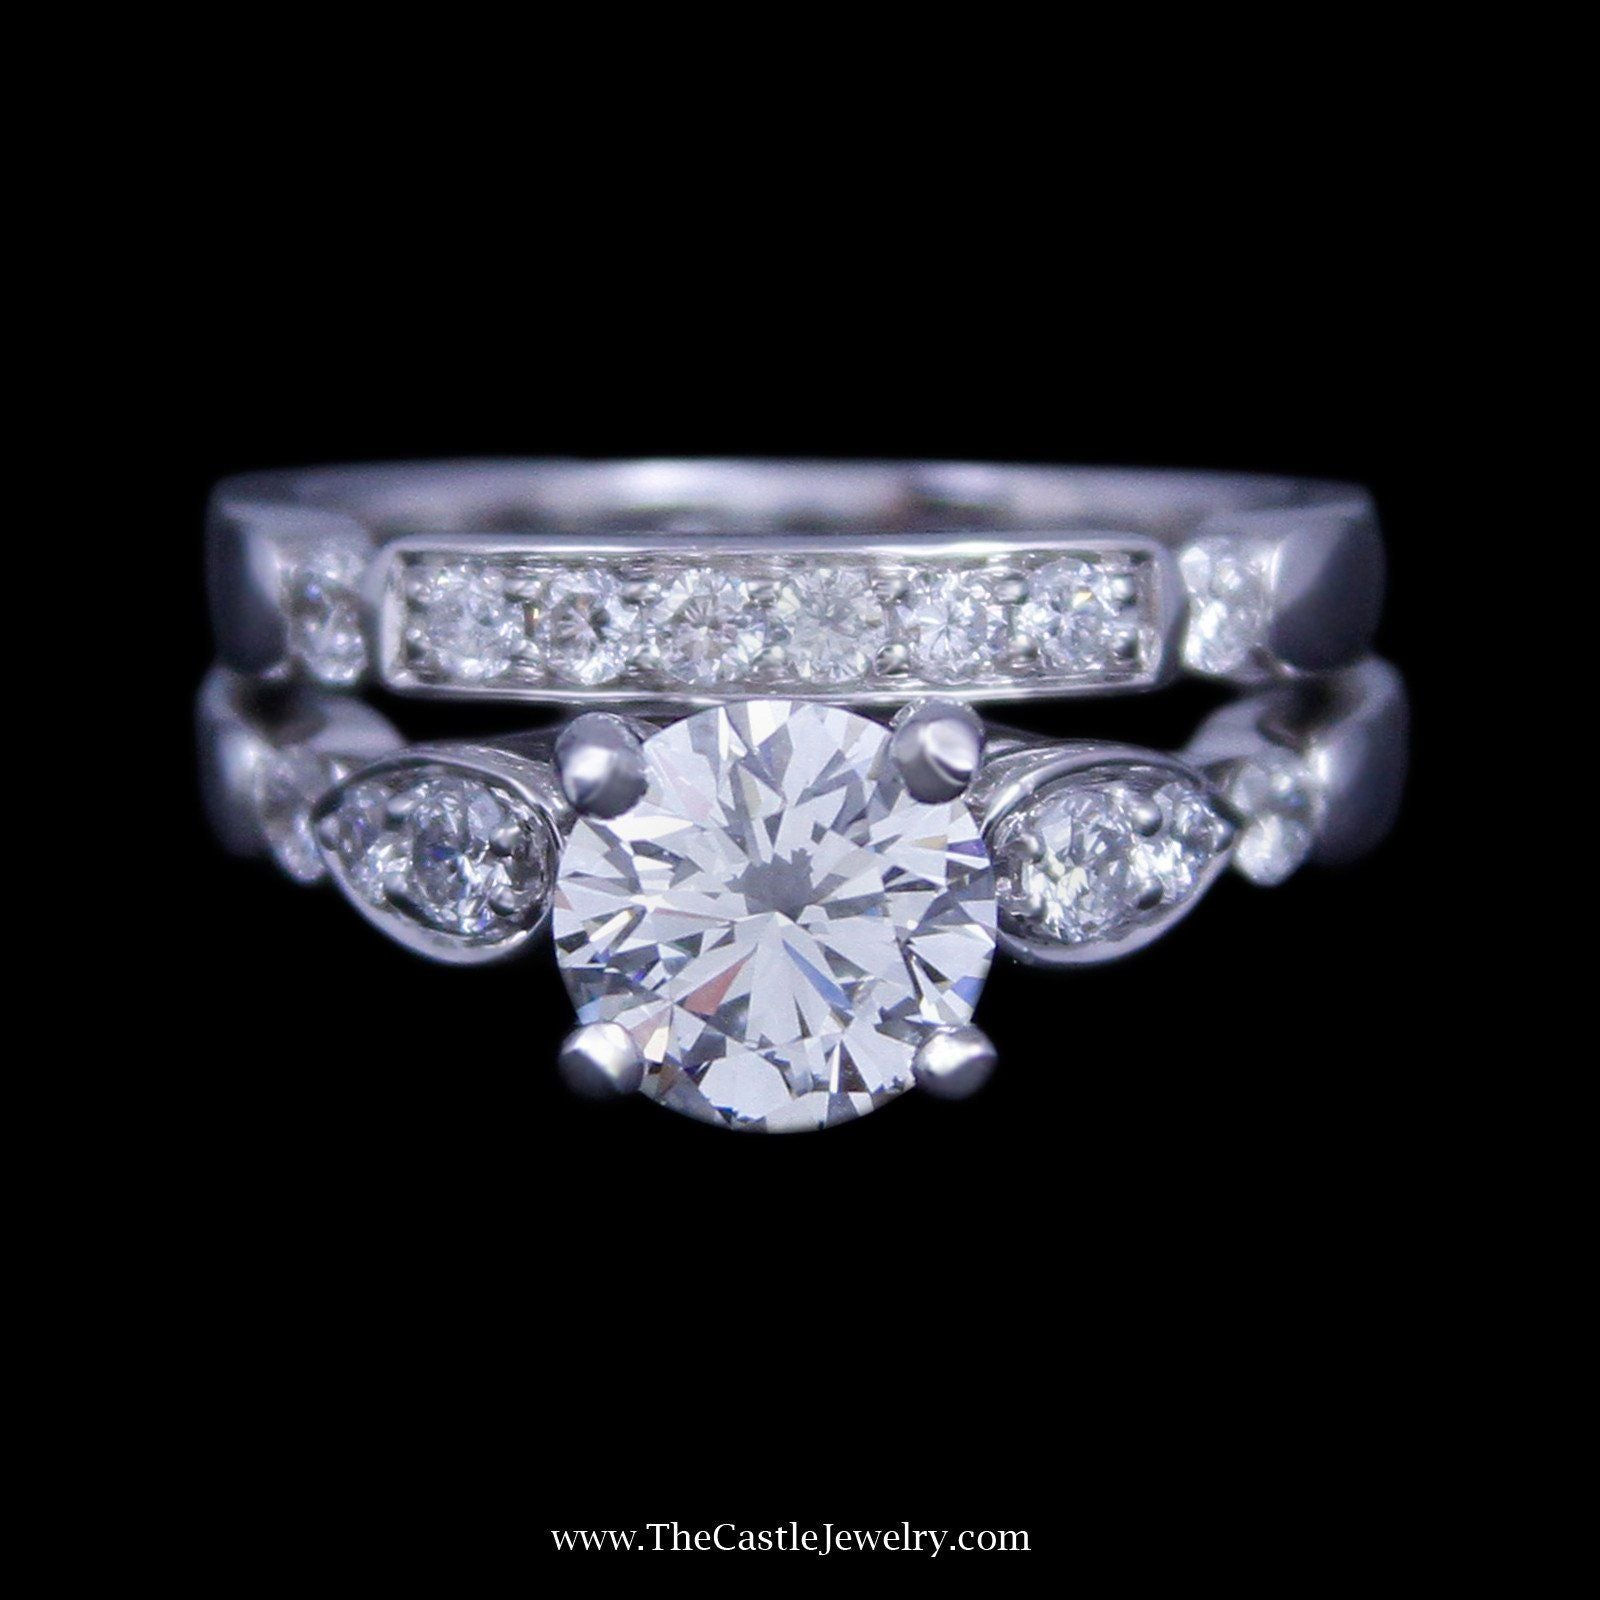 Round Brilliant Cut 2cttw Diamond Bridal Set with Diamond Sides and Diamond Band in 14k White Gold